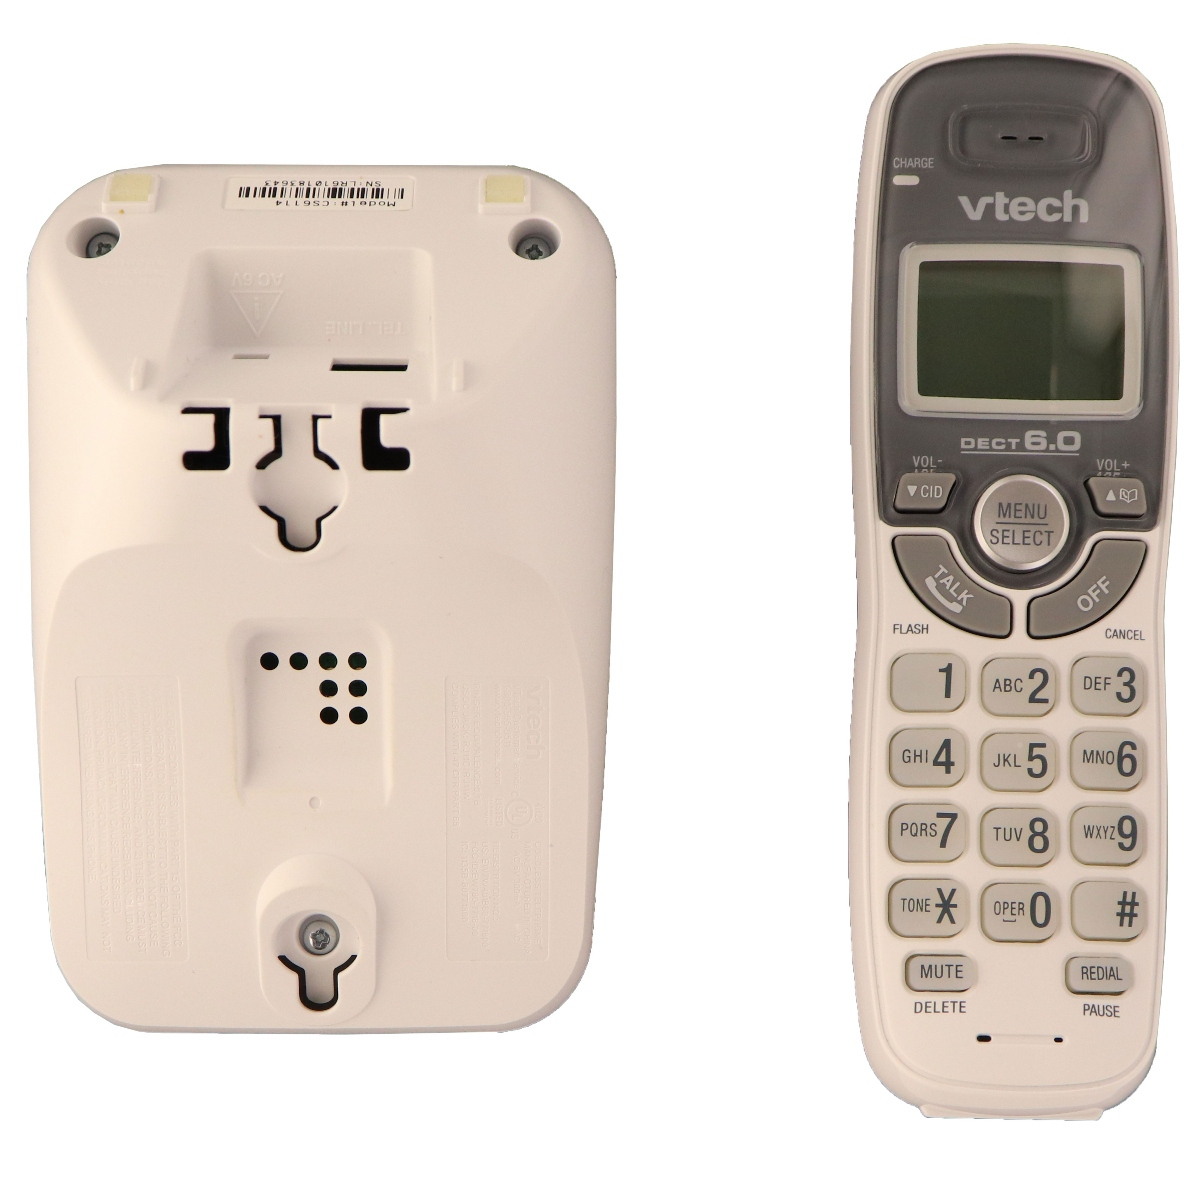 VTech CS6114 DECT 6.0 Cordless Phone with Caller ID/Call - White (Refurbished)